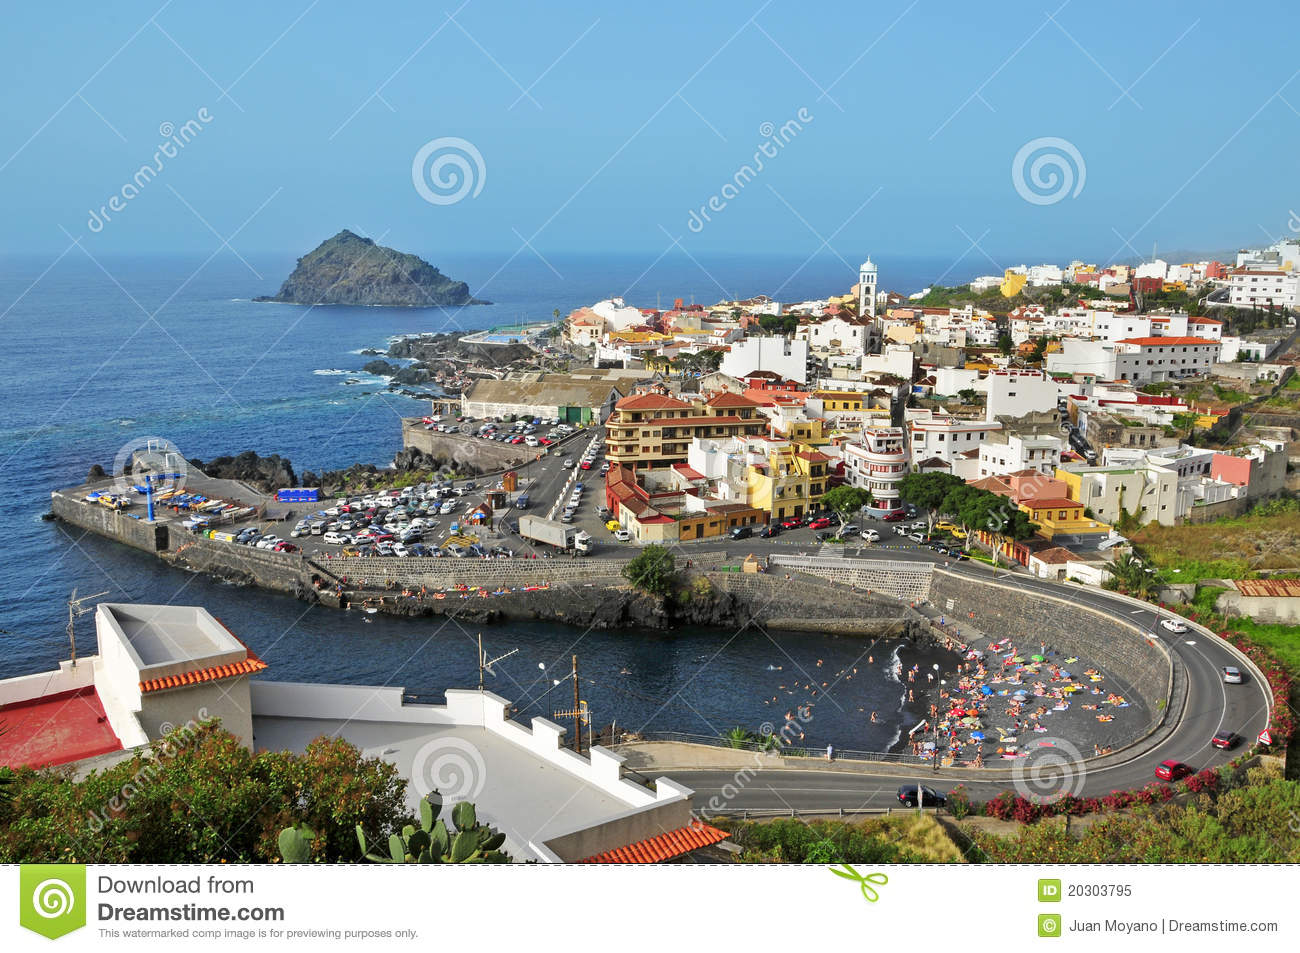 Garachico Spain  City new picture : Garachico, Tenerife, Canary Islands, Spain Royalty Free Stock Photo ...